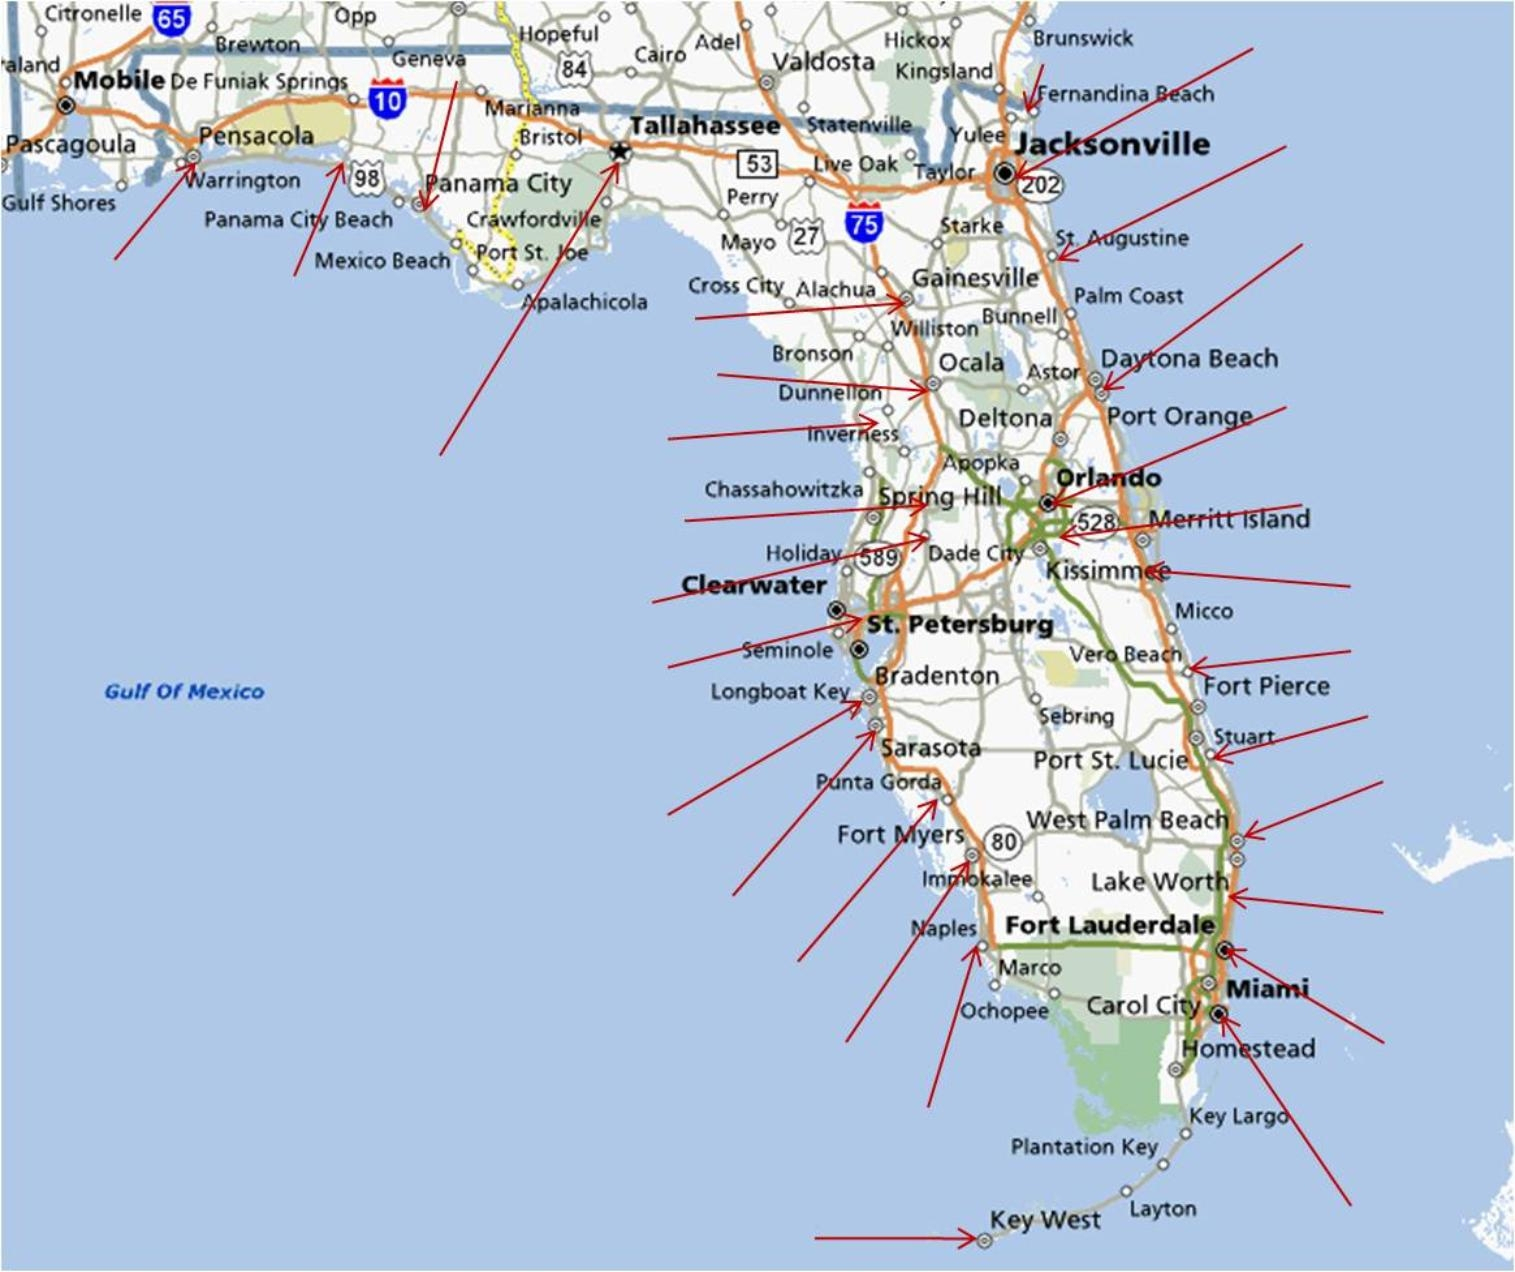 East Florida Map And Travel Information   Download Free East Florida Map - Florida East Coast Beaches Map